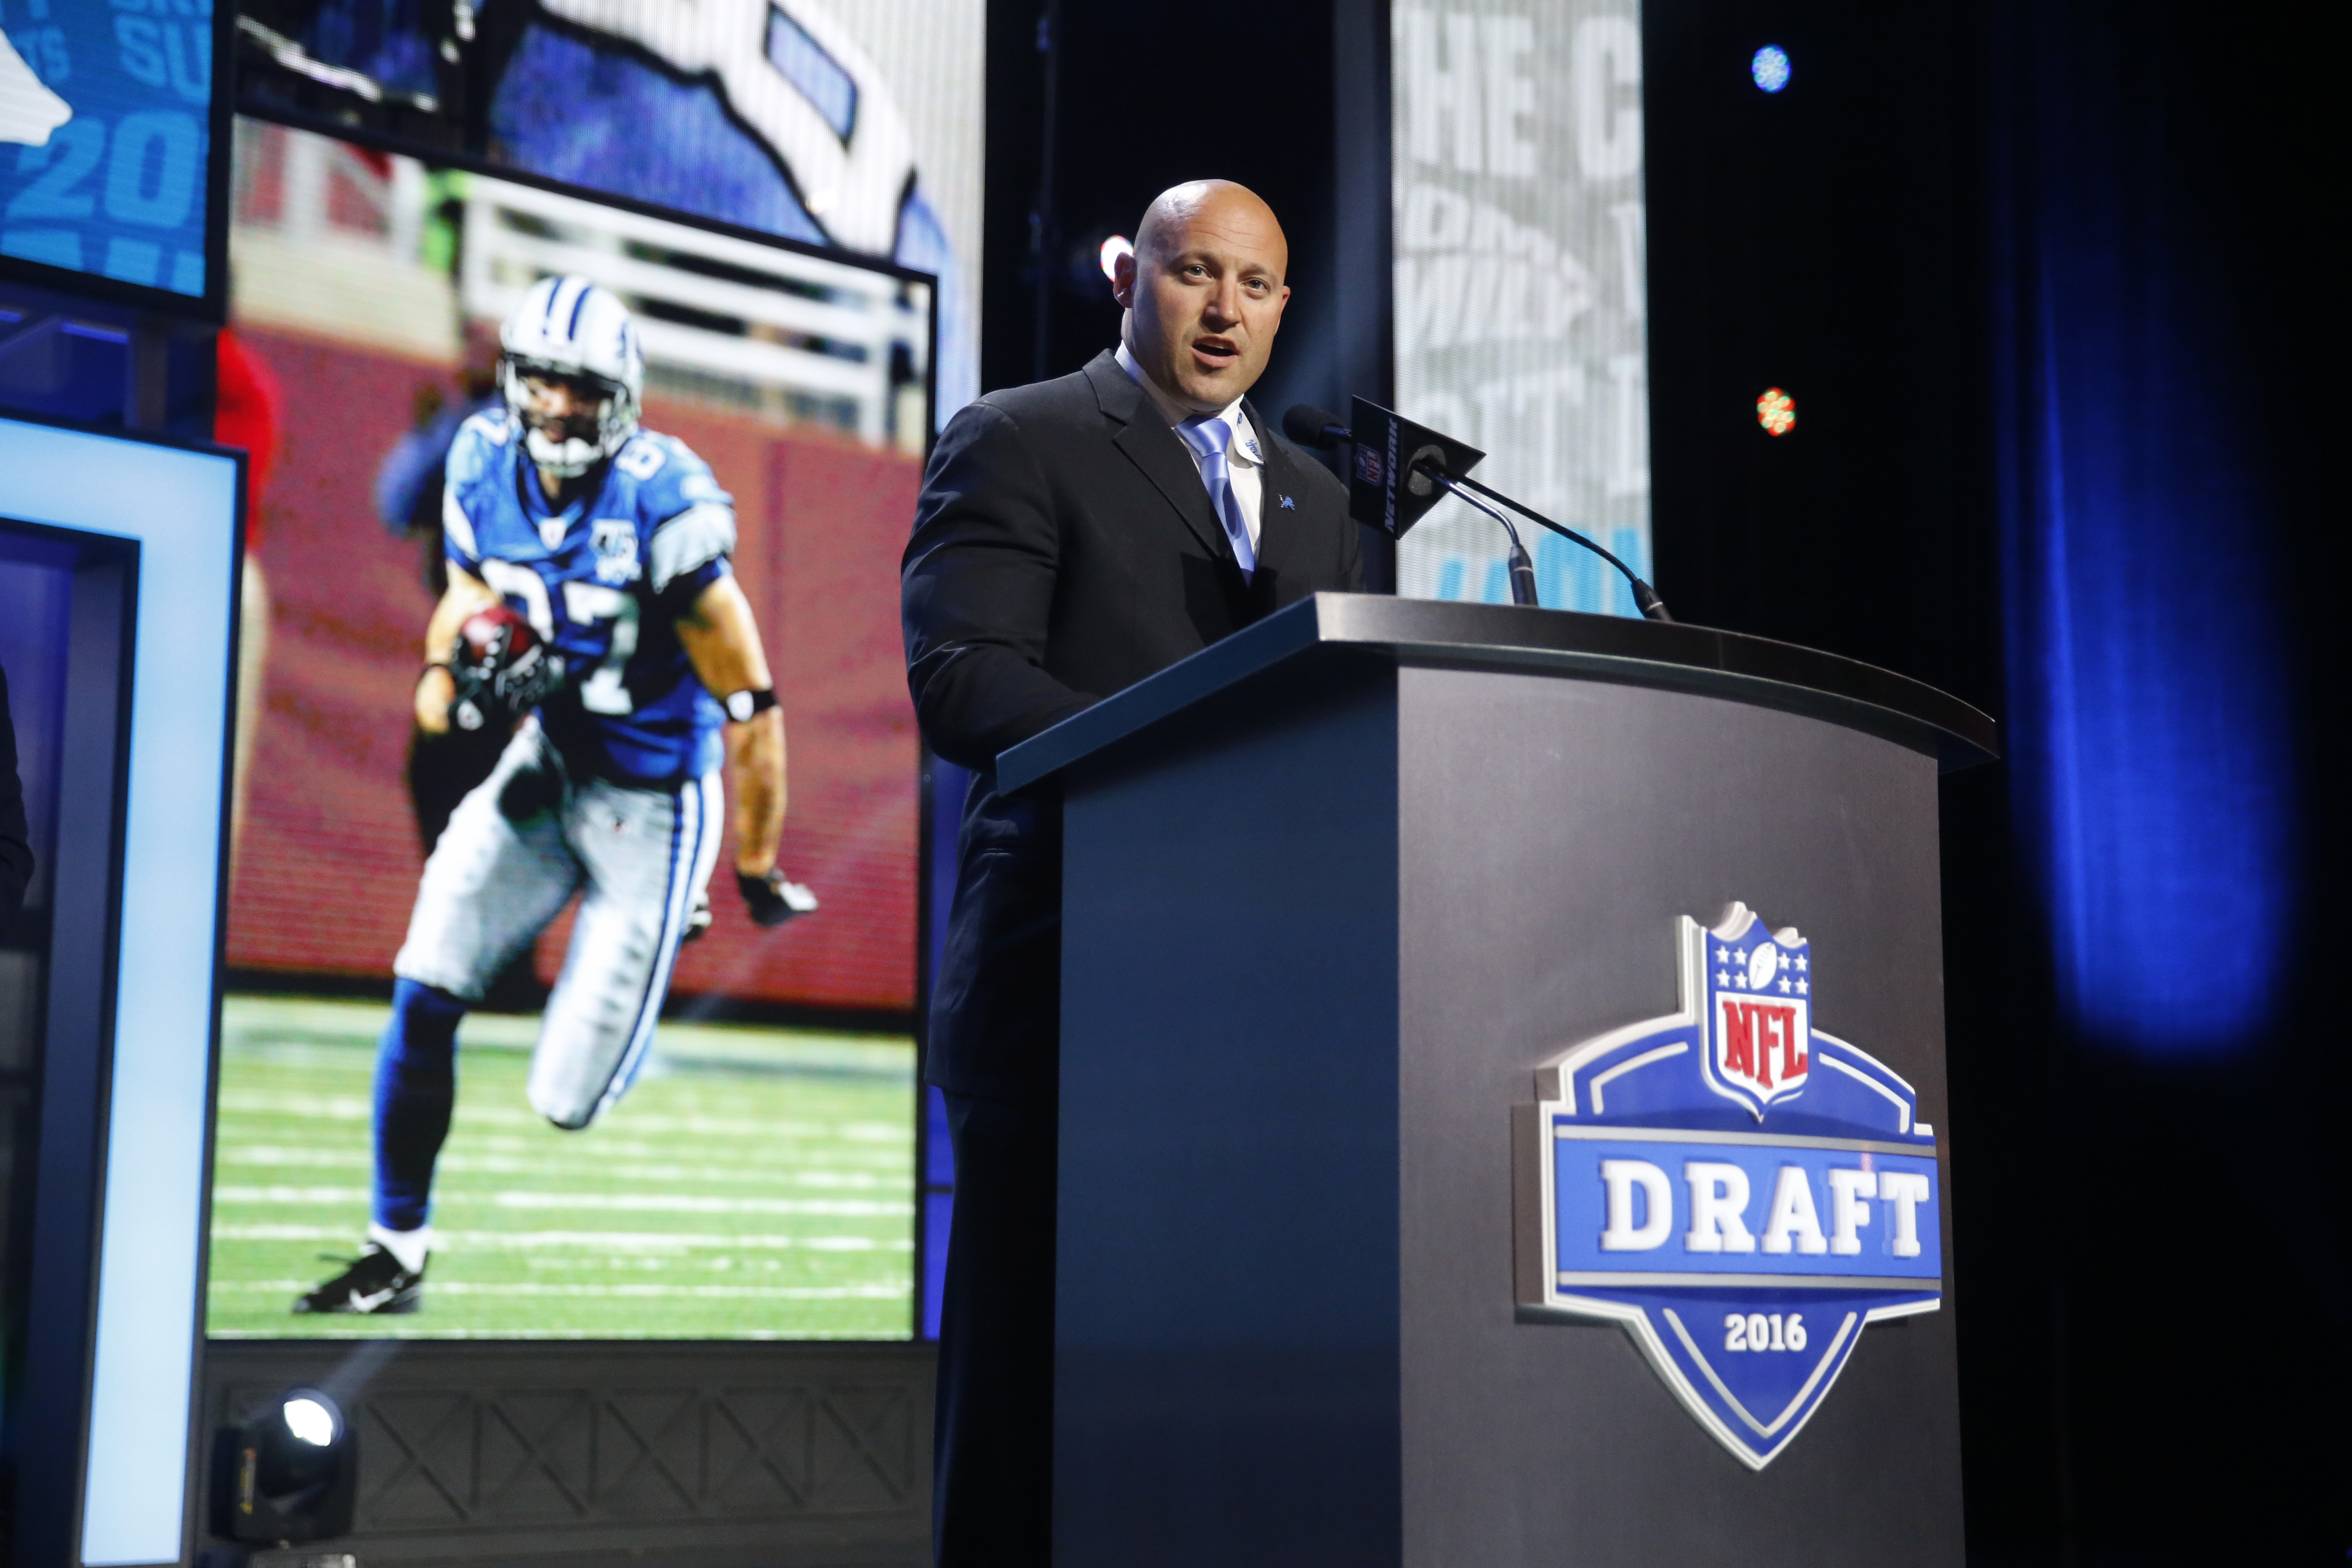 Former Walter Payton Men of the Year Mike Furrey announces that the Detroit Lions selects Michigans Graham Glasgow as the 95th pick in the third round of the 2016 NFL football draft, Friday, April 29, 2016, in Chicago. (AP Photo/Charles Rex Arbogast)